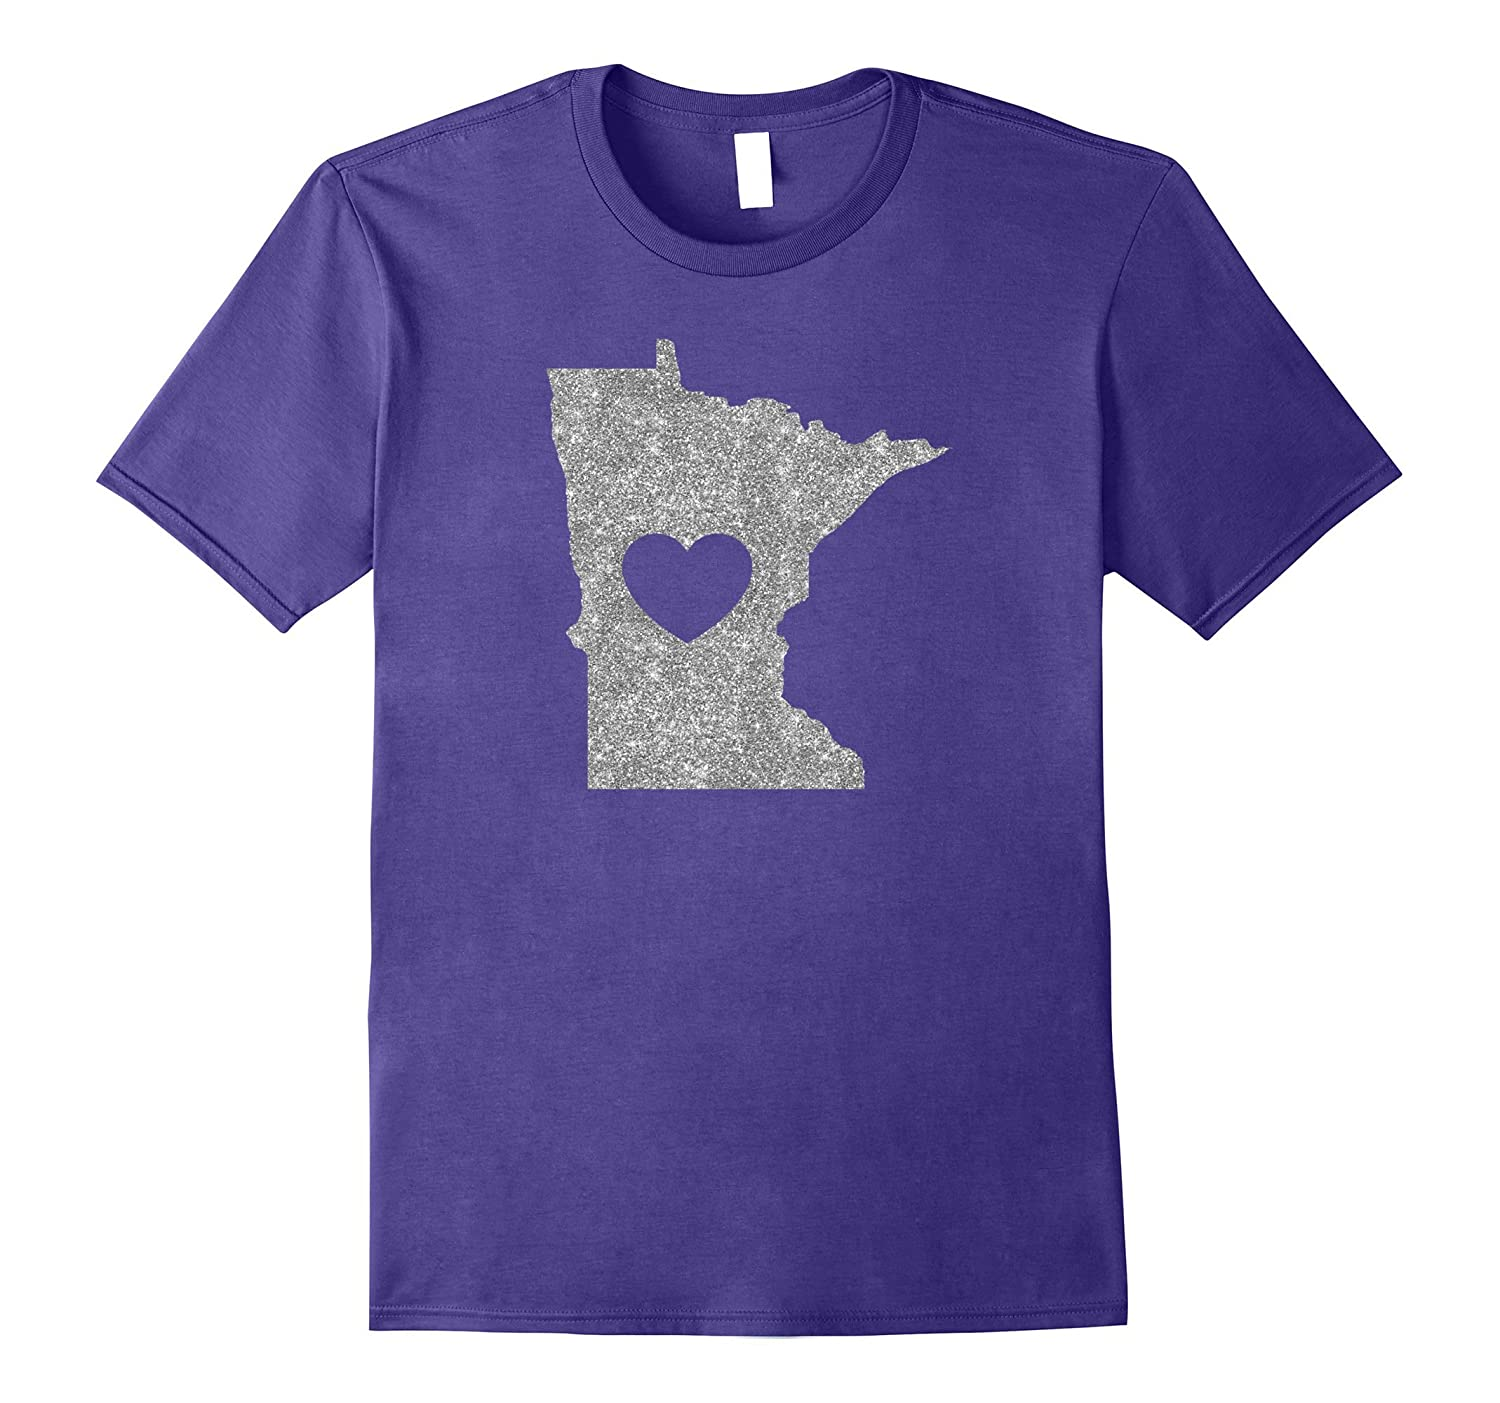 The Official Minnesota